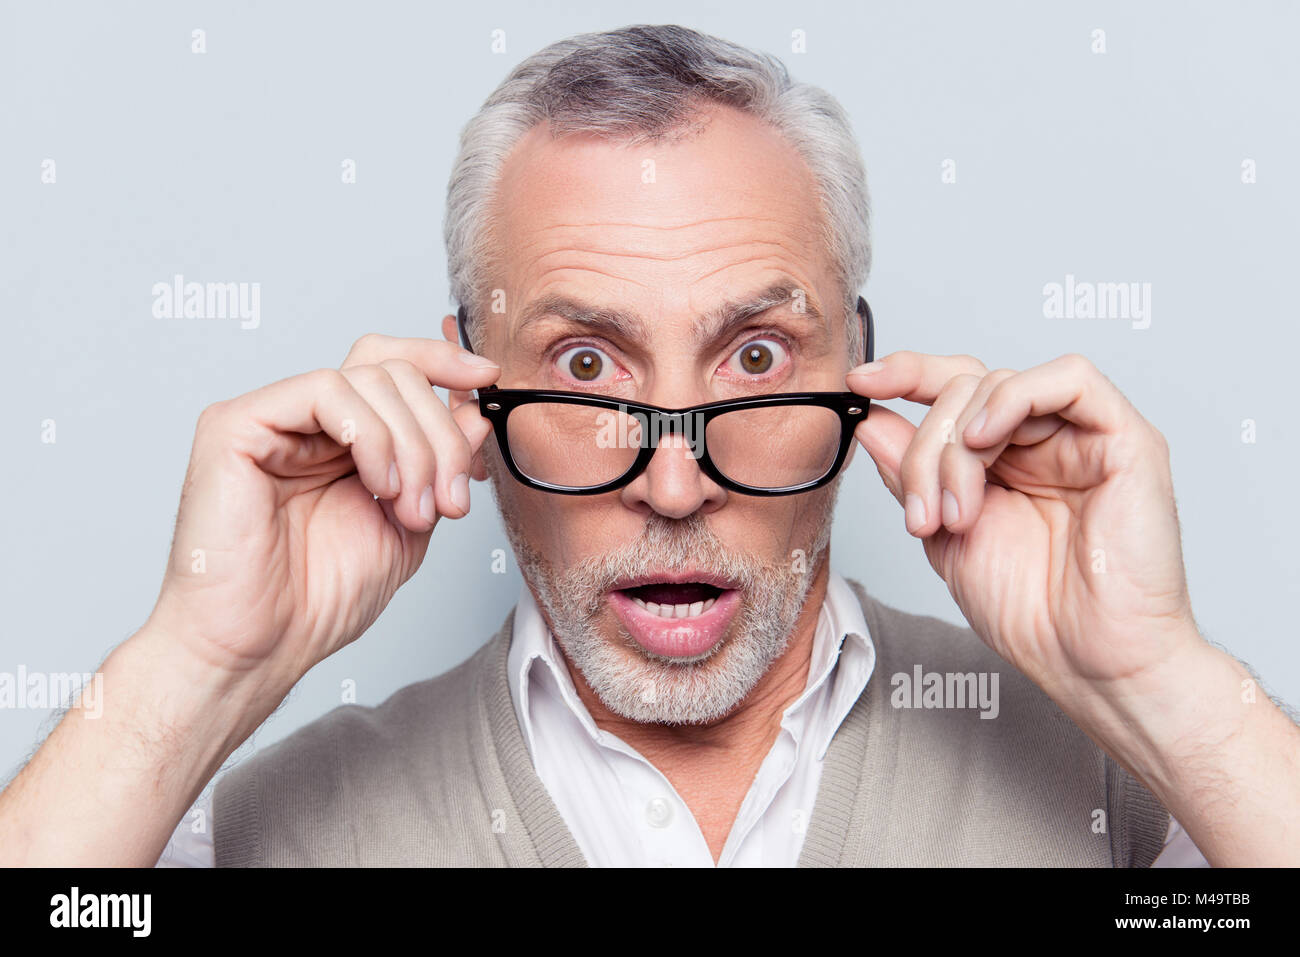 Take off put on glasses. Are you crazy? Close up portrait of shocked surprised uncertain unassured terrified grandfather - Stock Image